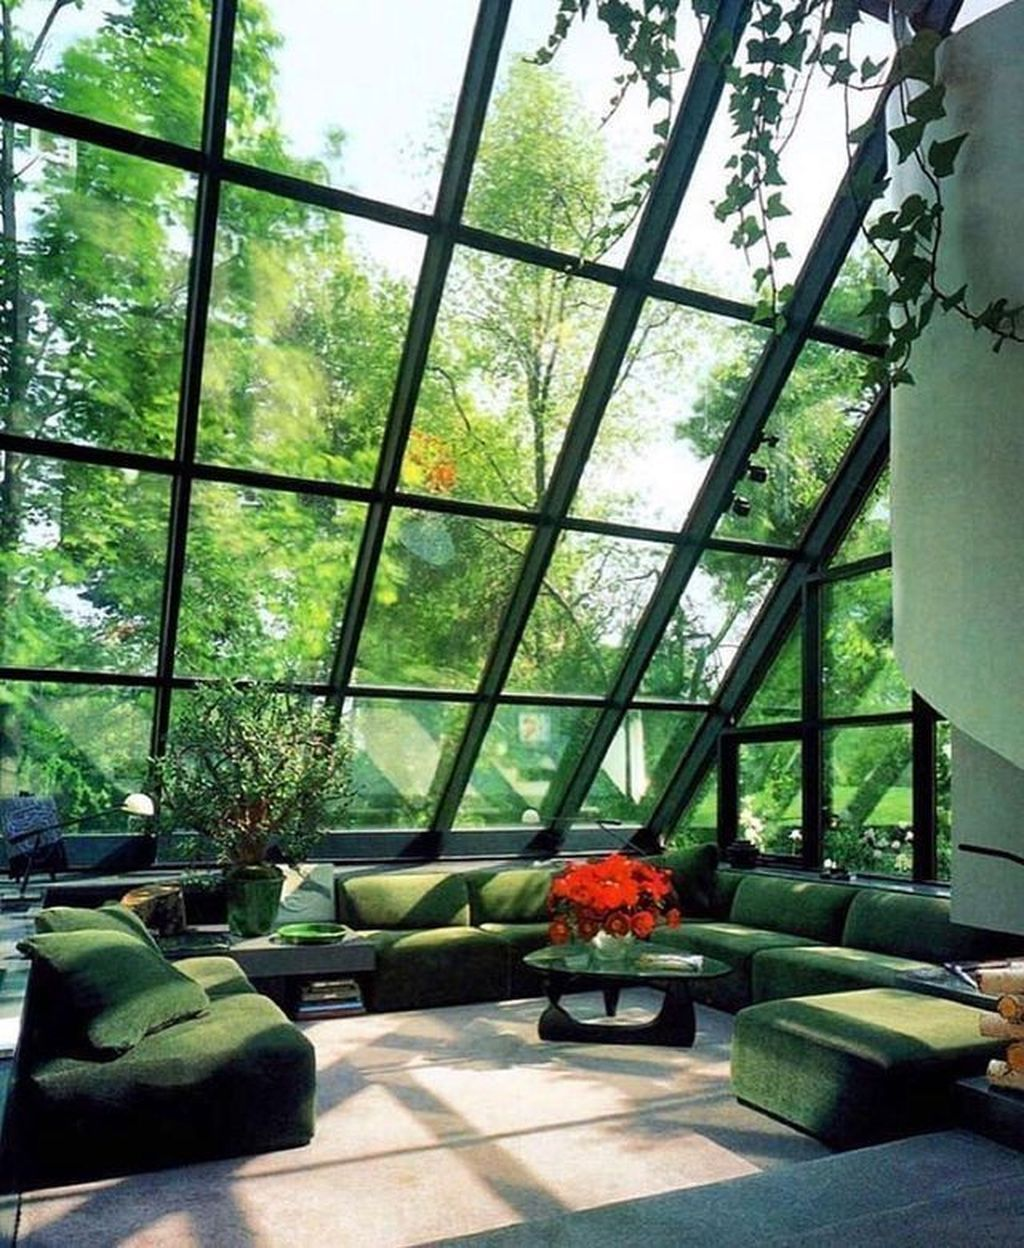 38 Awesome Modern House Design Ideas For Interior House Design Architecture Architecture Design